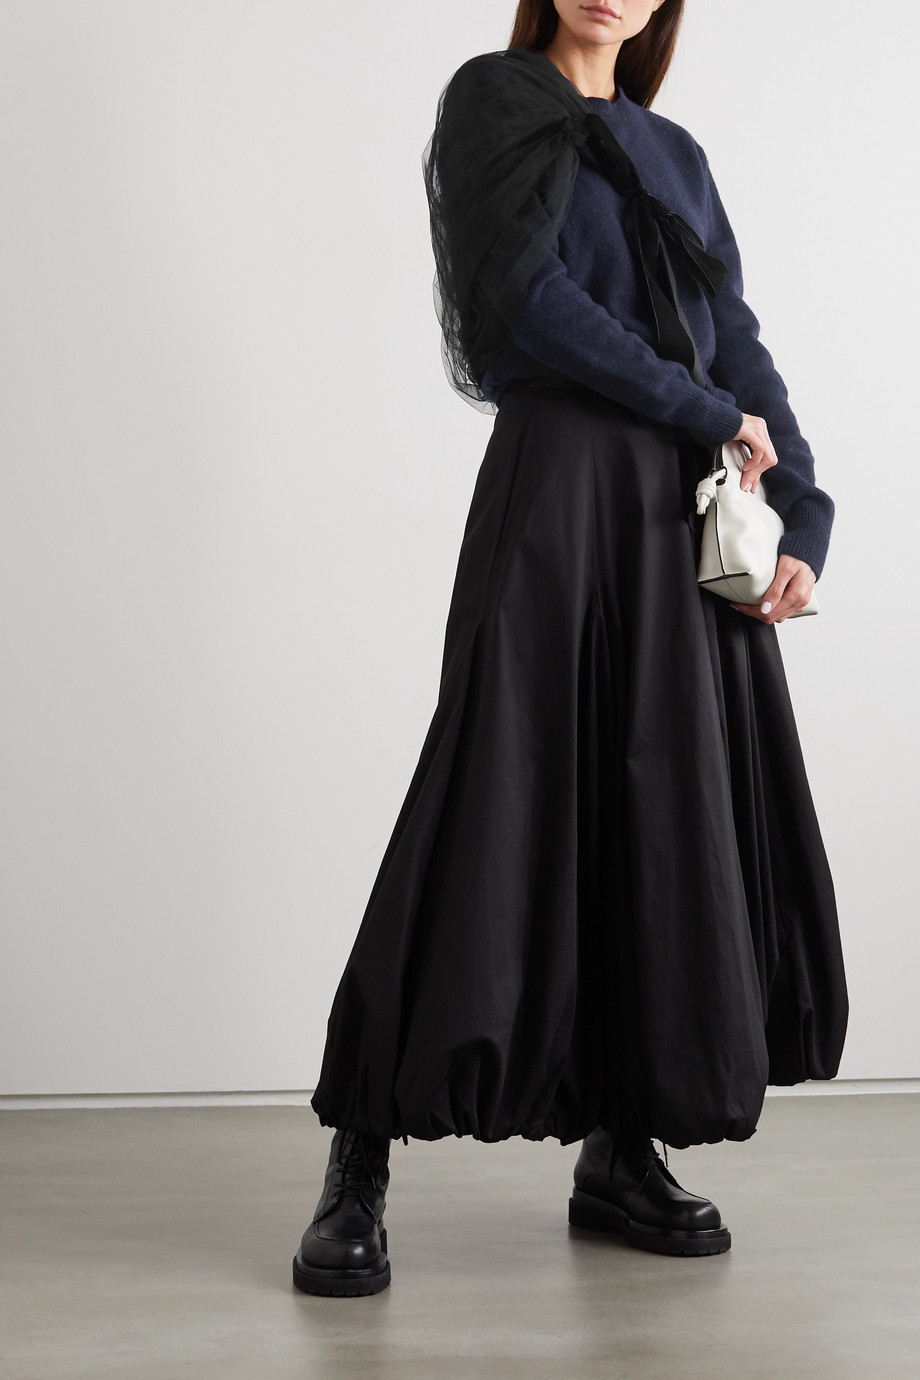 Molly Goddard Eliza layered velvet-trimmed tulle and wool sweater